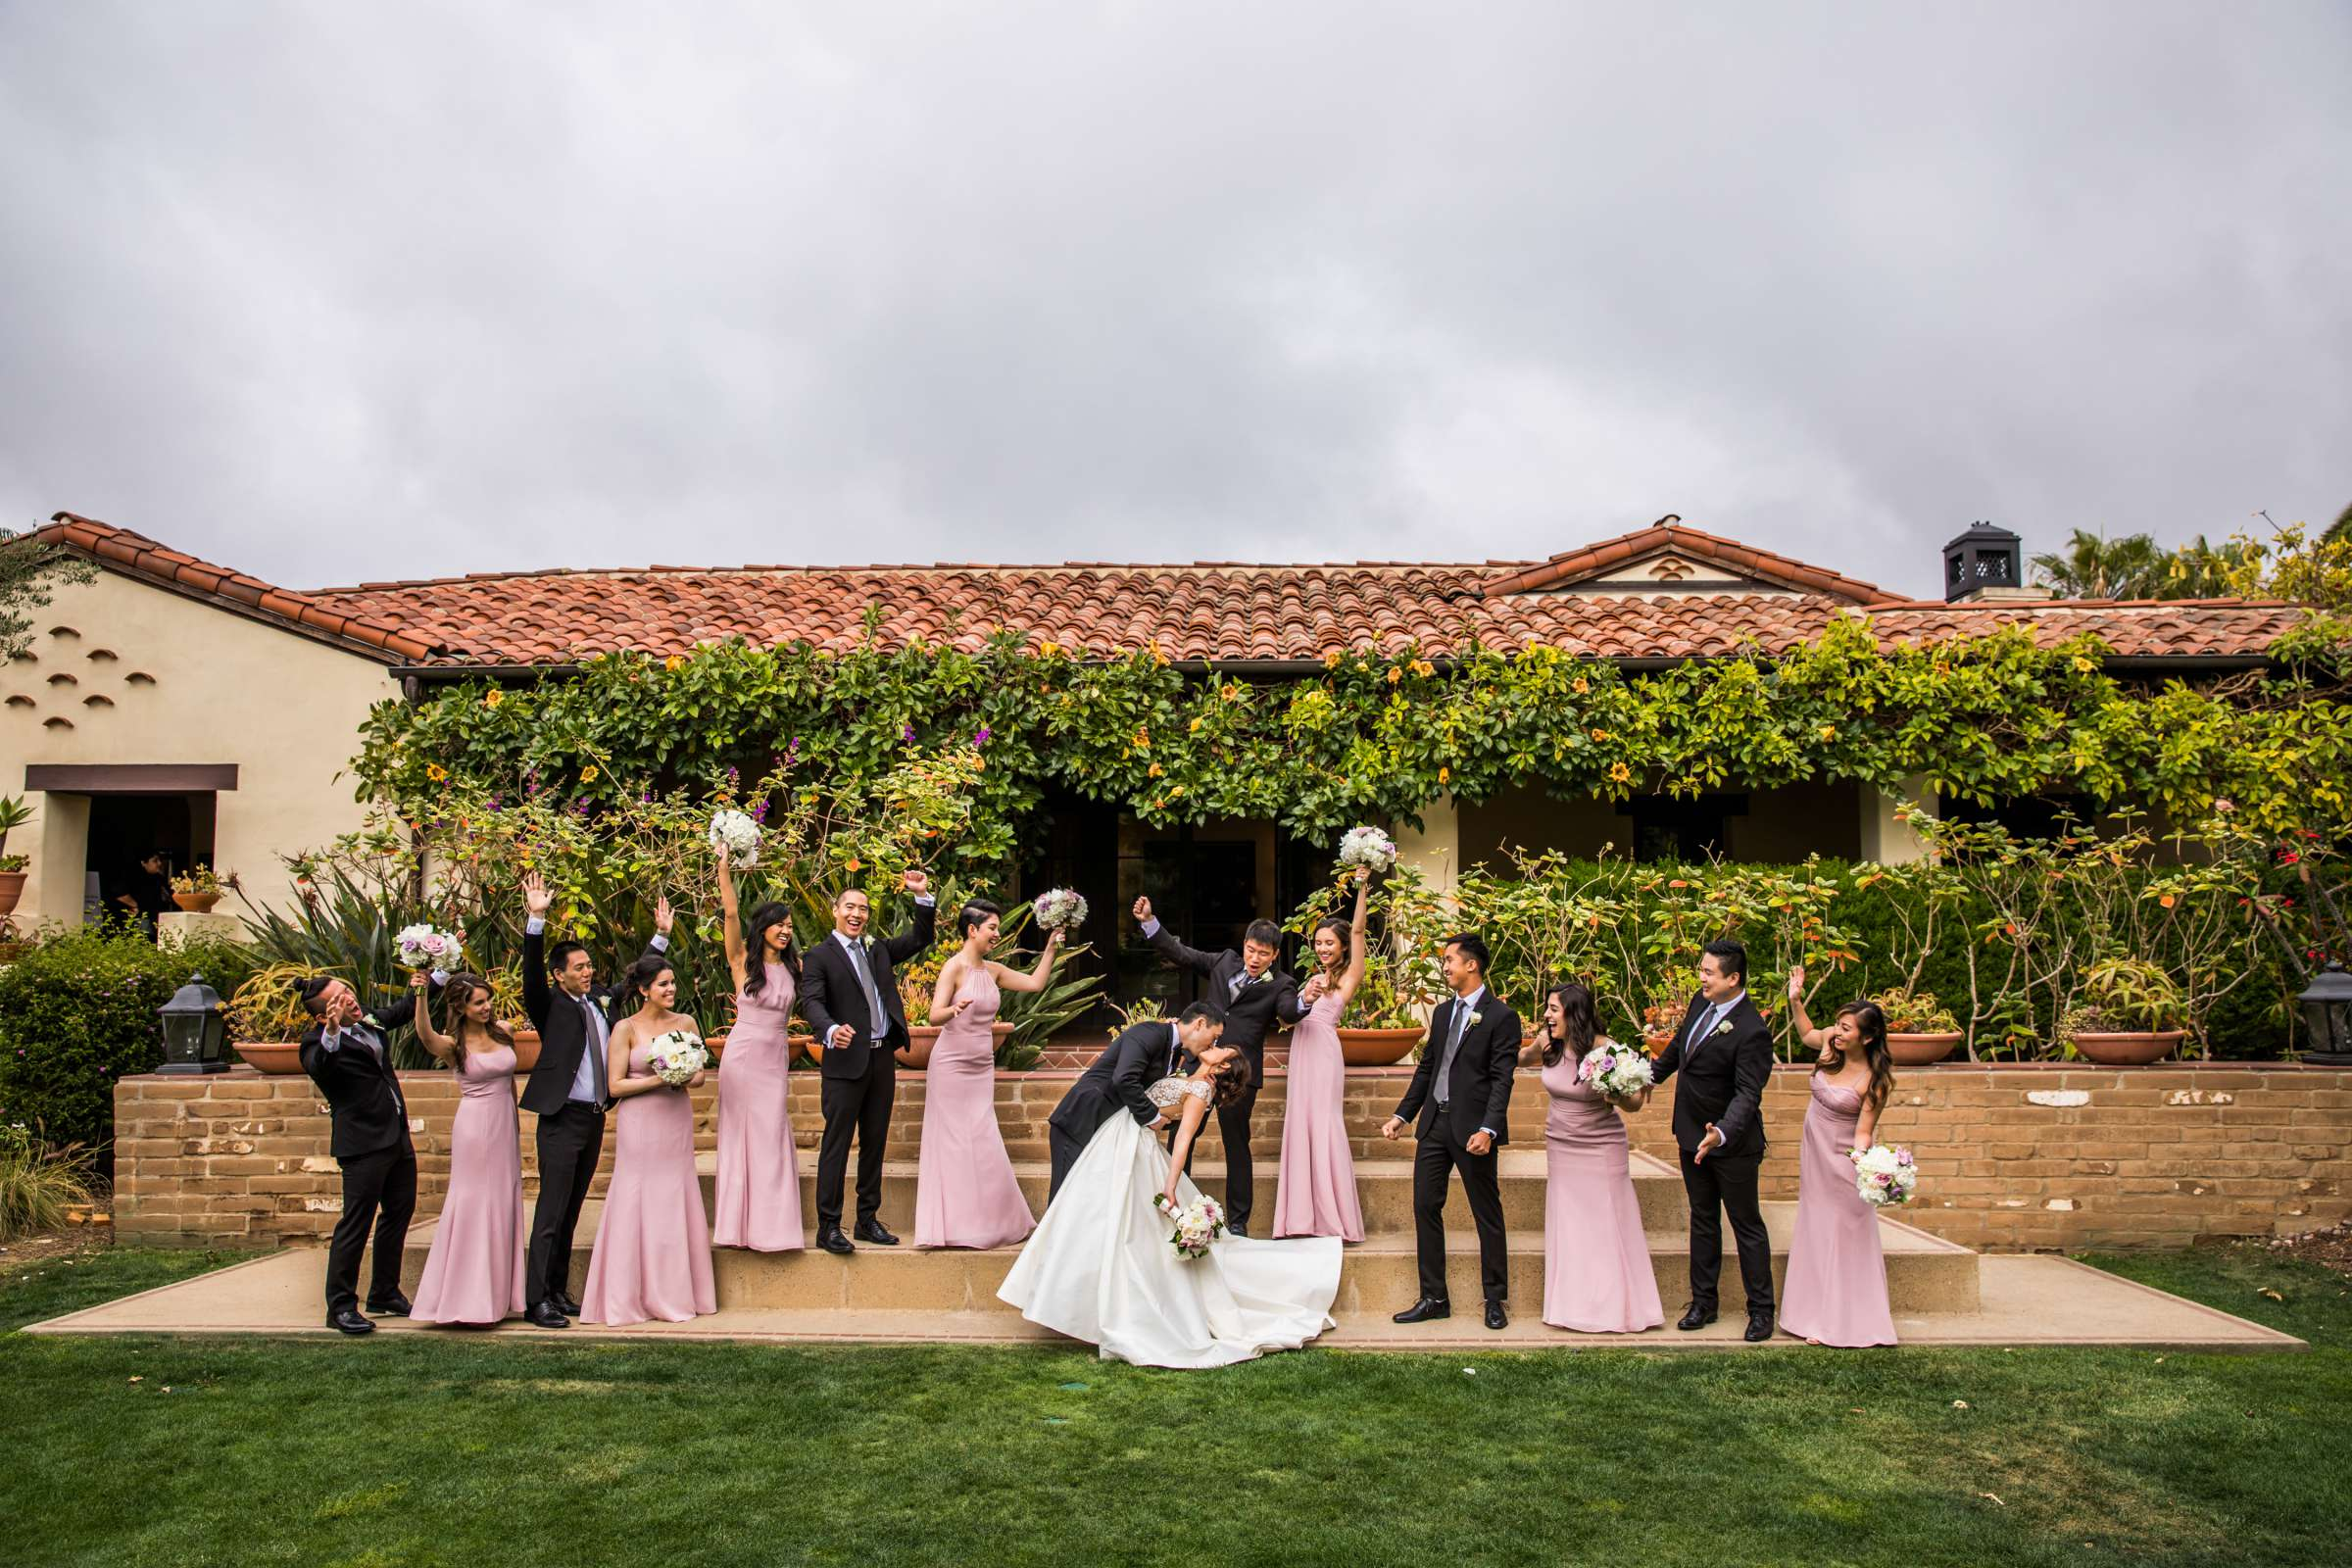 Estancia Wedding coordinated by Sweet Blossom Weddings, Allison and Alvin Wedding Photo #68 by True Photography